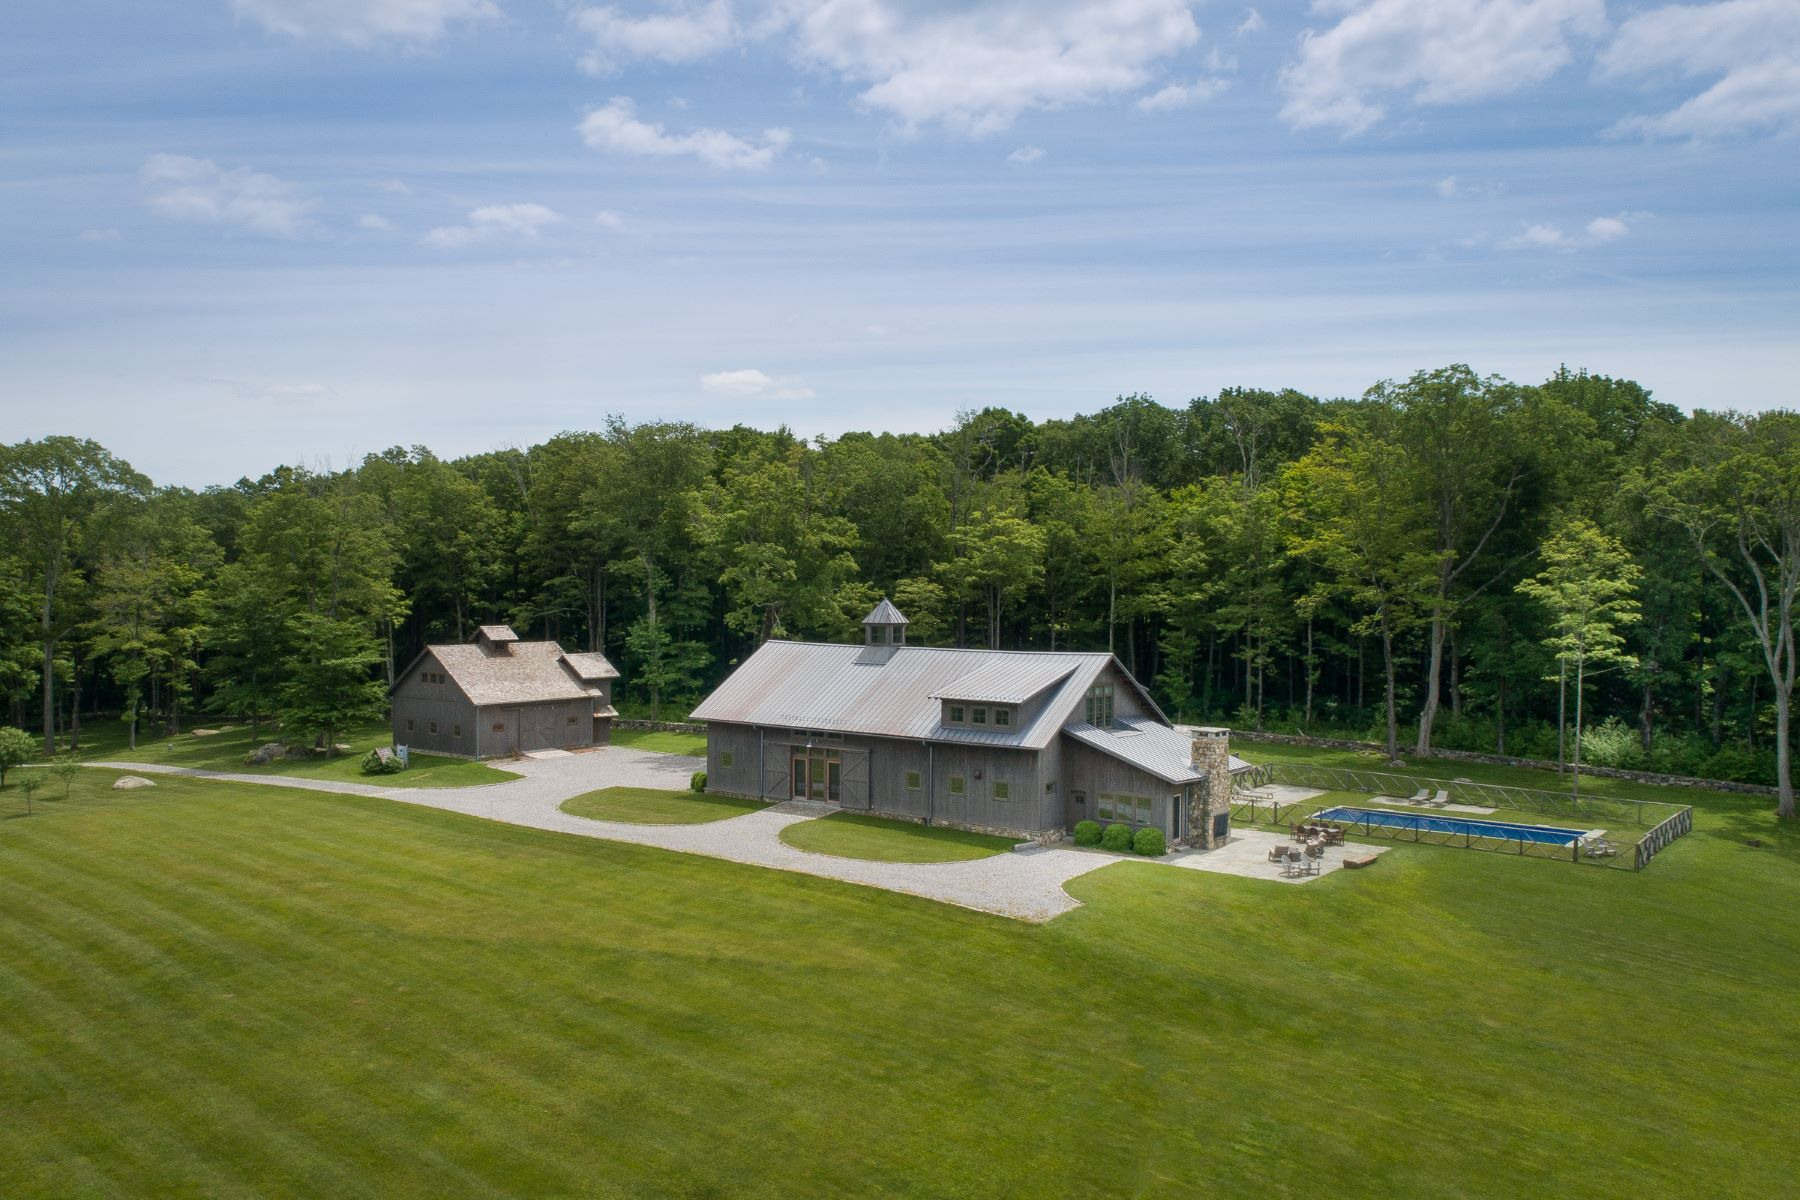 Single Family Homes for Active at Private Modern Escape 115 Shearer Road Washington, Connecticut 06793 United States